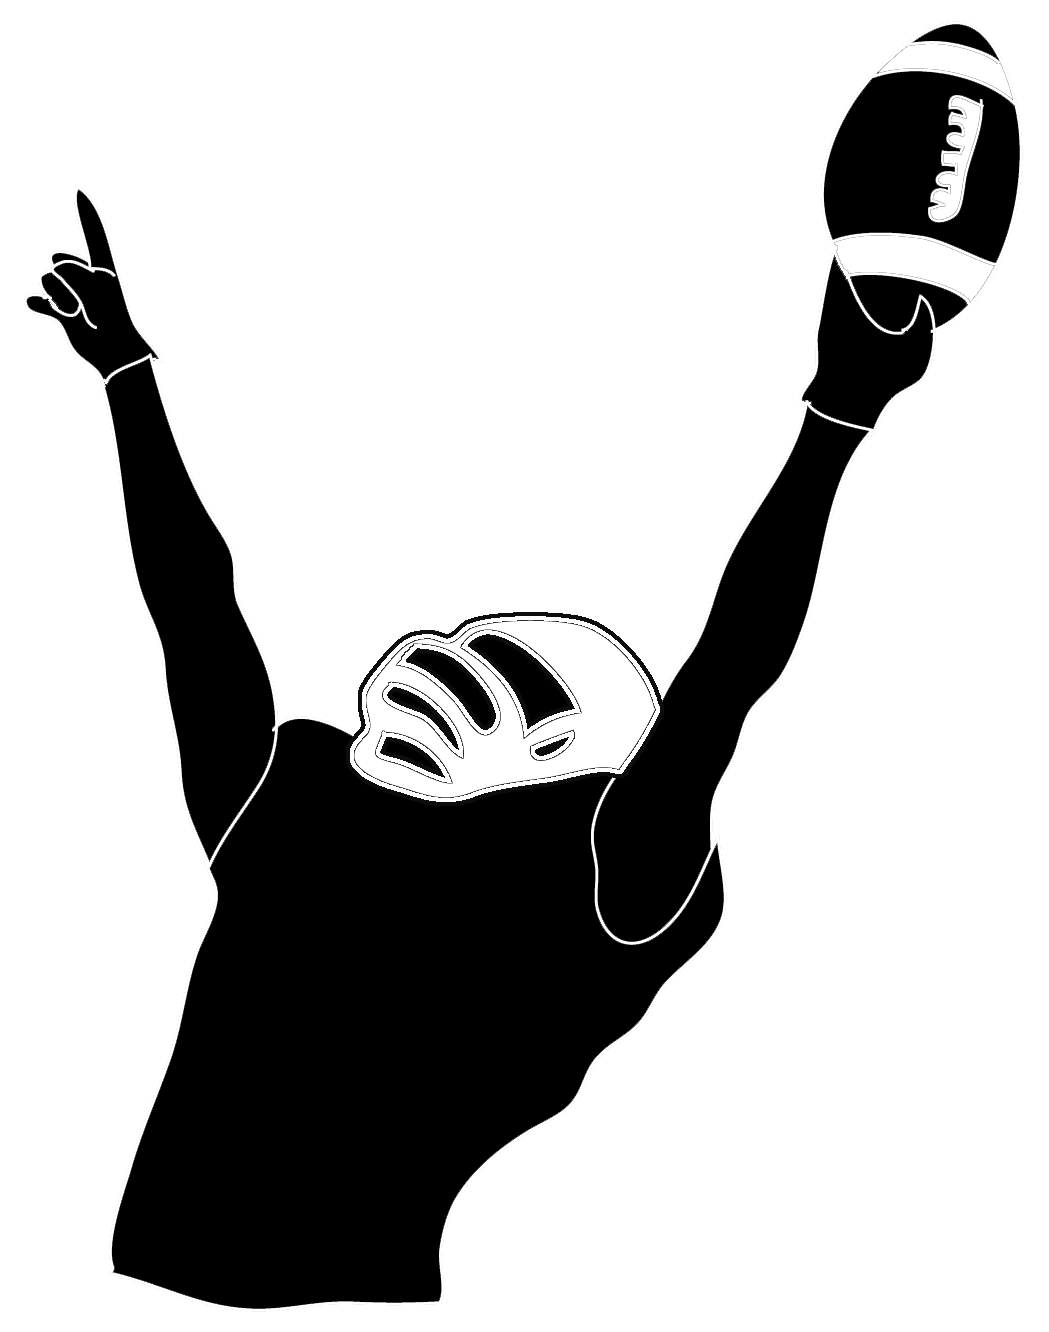 hight resolution of victory football player